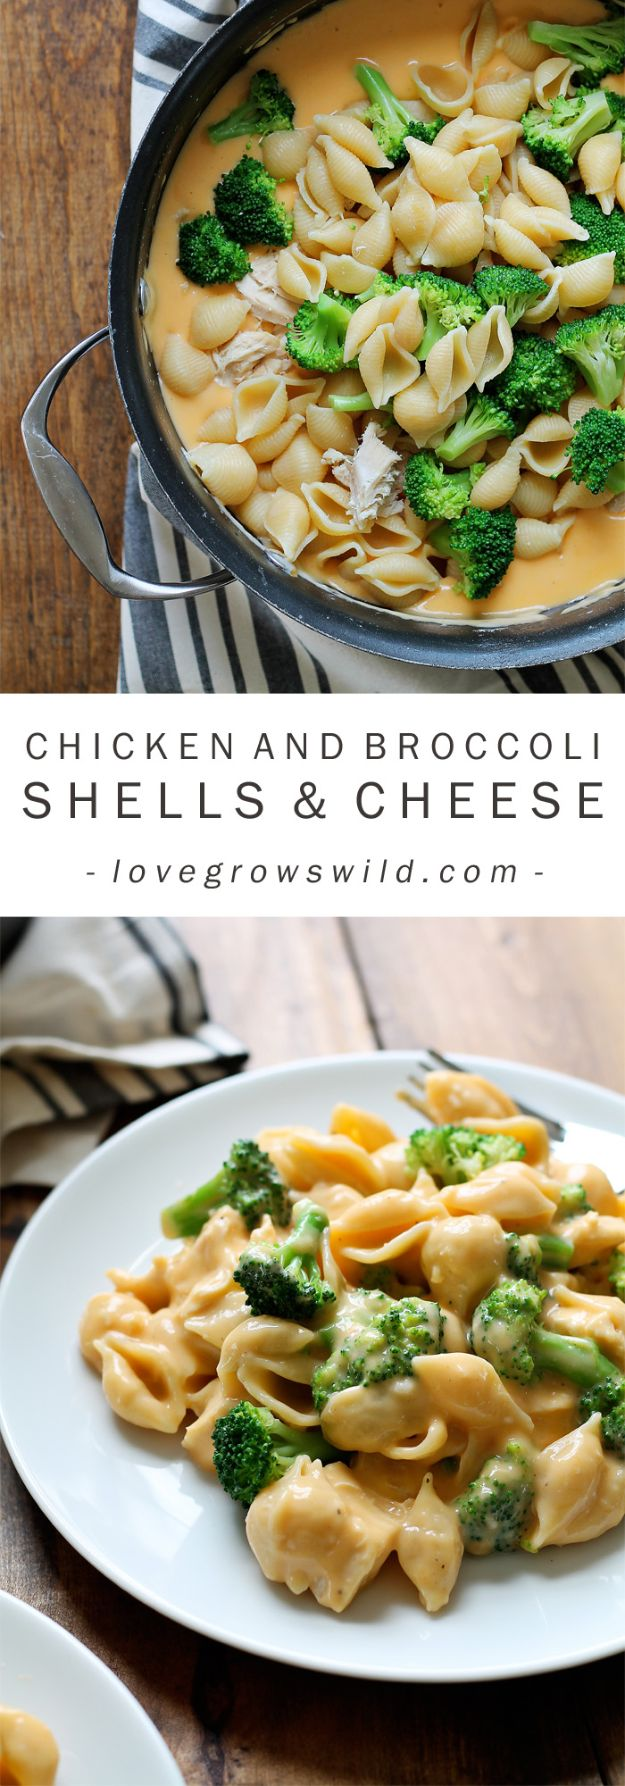 Easy Recipes For Rotisserie Chicken - Chicken And Broccoli Shells And Cheese - Healthy Recipe Ideas for Leftovers - Comfort Foods With Chicken - Low Carb and Gluten Free, Crock Pot Meals,#easyrecipes #dinnerideas #recipes